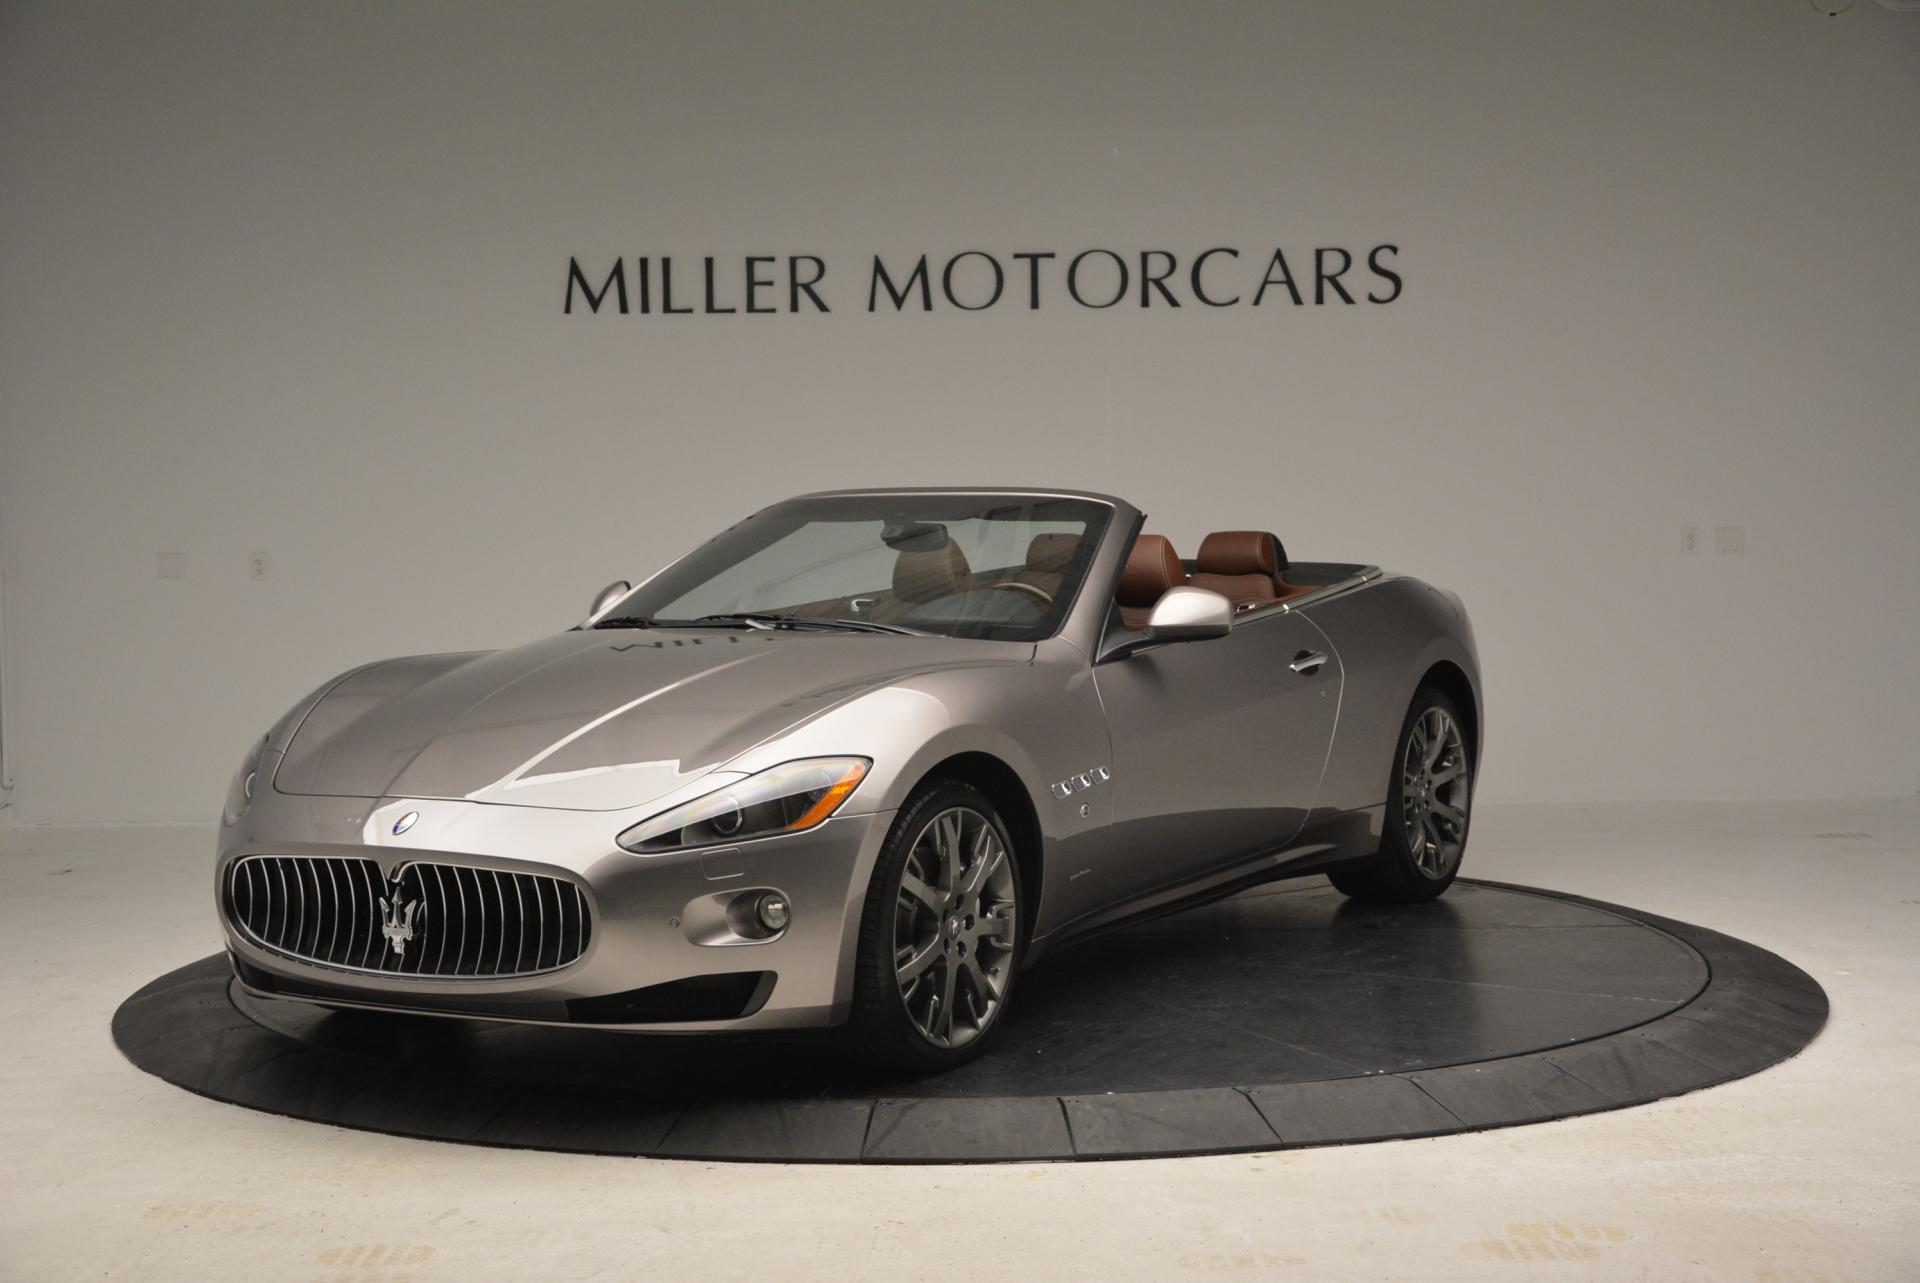 Used 2012 Maserati GranTurismo for sale Sold at Bentley Greenwich in Greenwich CT 06830 1